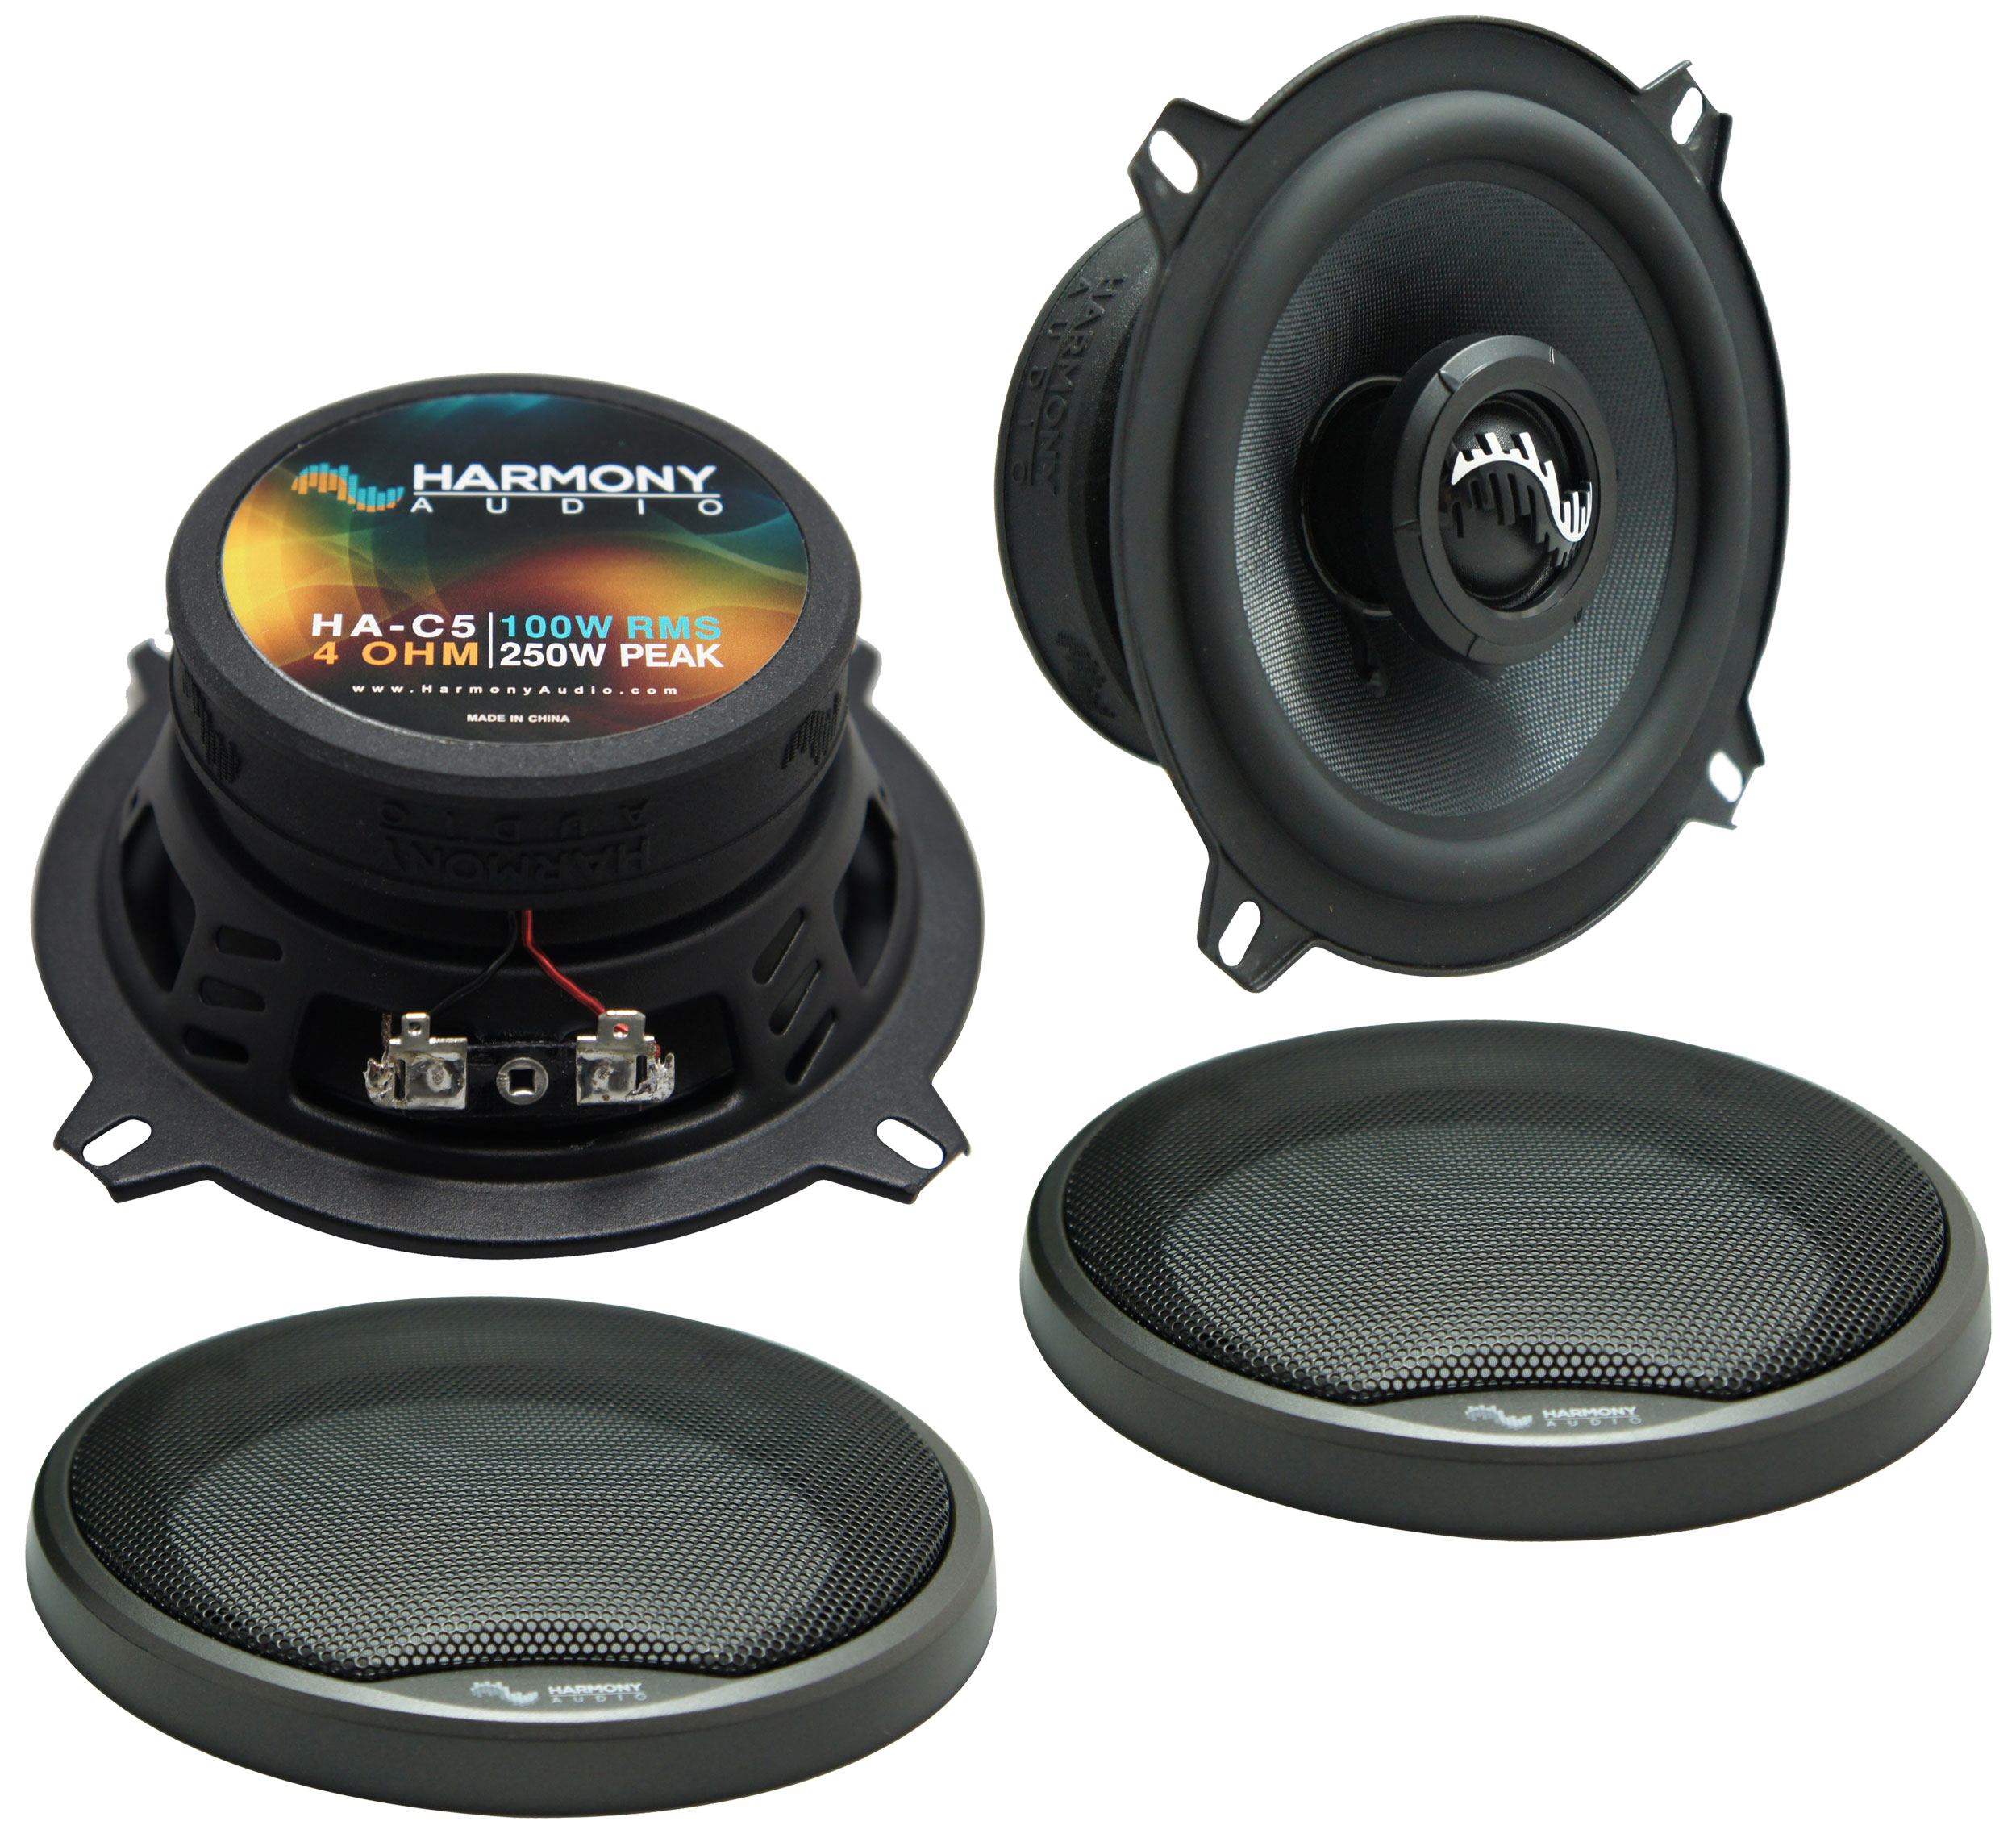 """Harmony Master Bundle Compatible with 1992-1995 Honda Civic HA-C5 5.25"""" Replacement 250W Speakers & Grills with HA-727800 Factory Speaker Replacement Harness"""